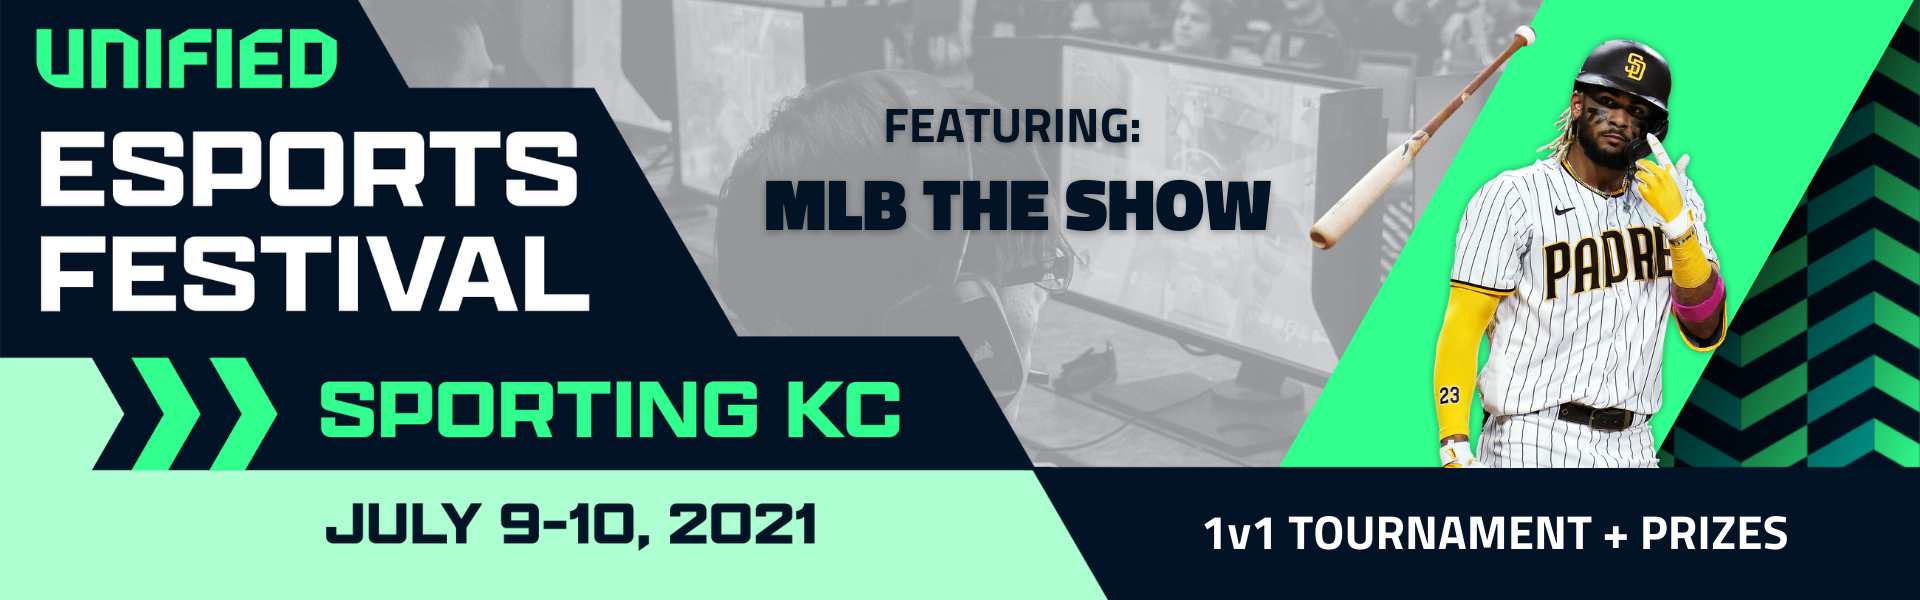 EF:SKC Featuring MLB the Show 21 (PS4)